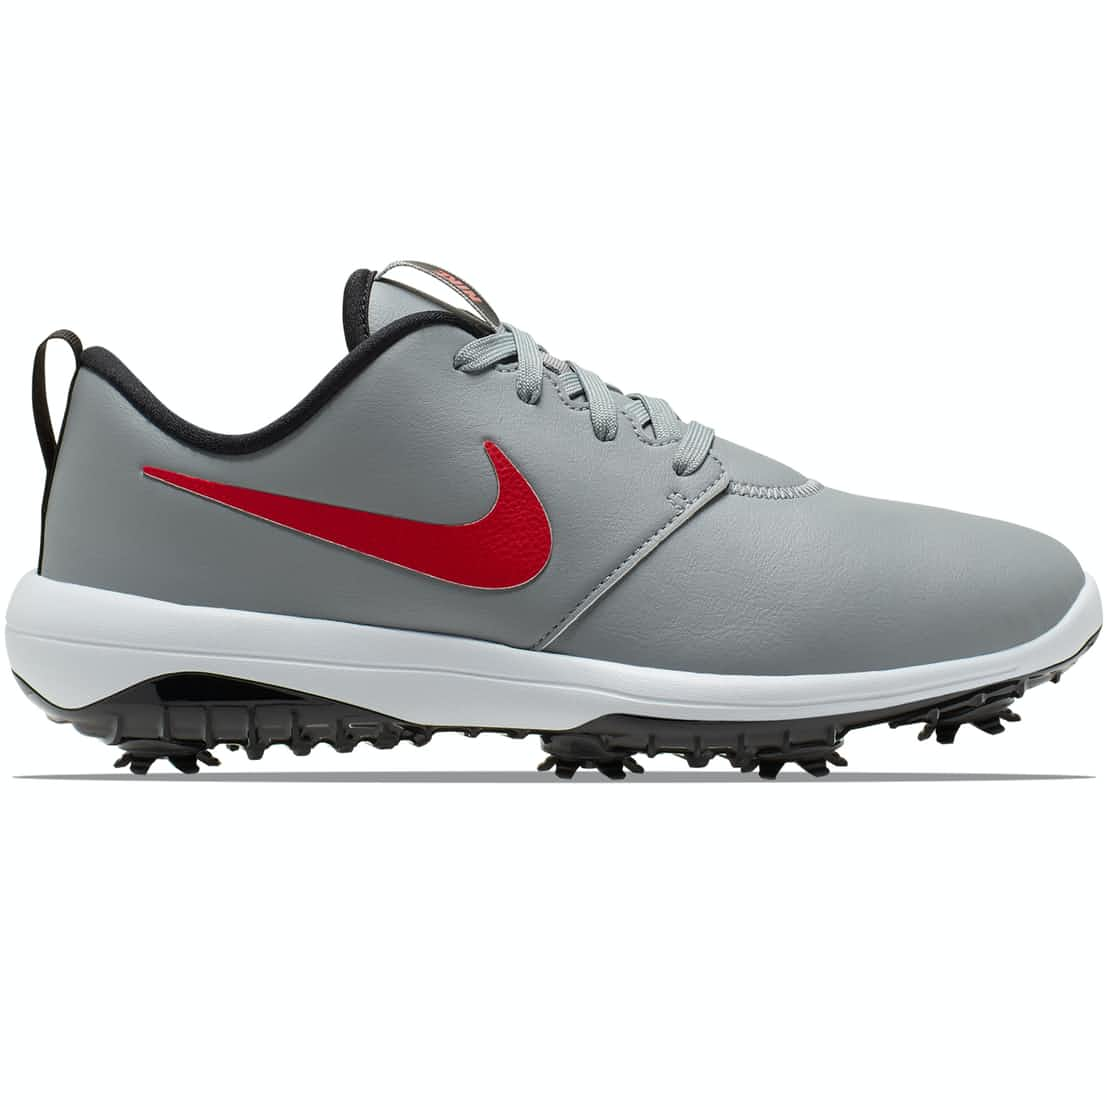 Roshe Golf Tour Particle Grey/University Red - SS20